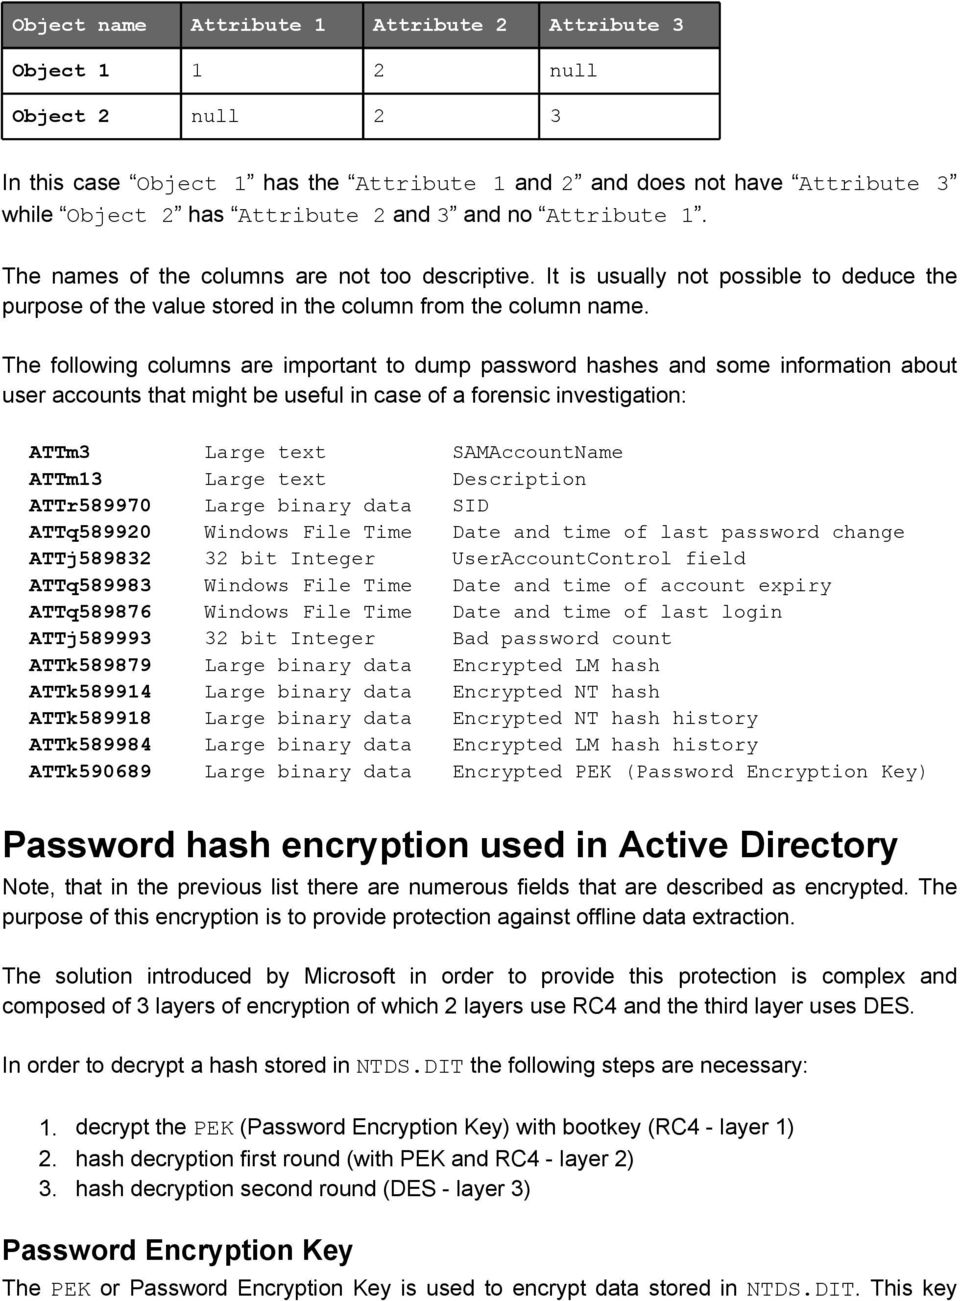 The following columns are important to dump password hashes and some information about user accounts that might be useful in case of a forensic investigation: ATTm3 Large text SAMAccountName ATTm13